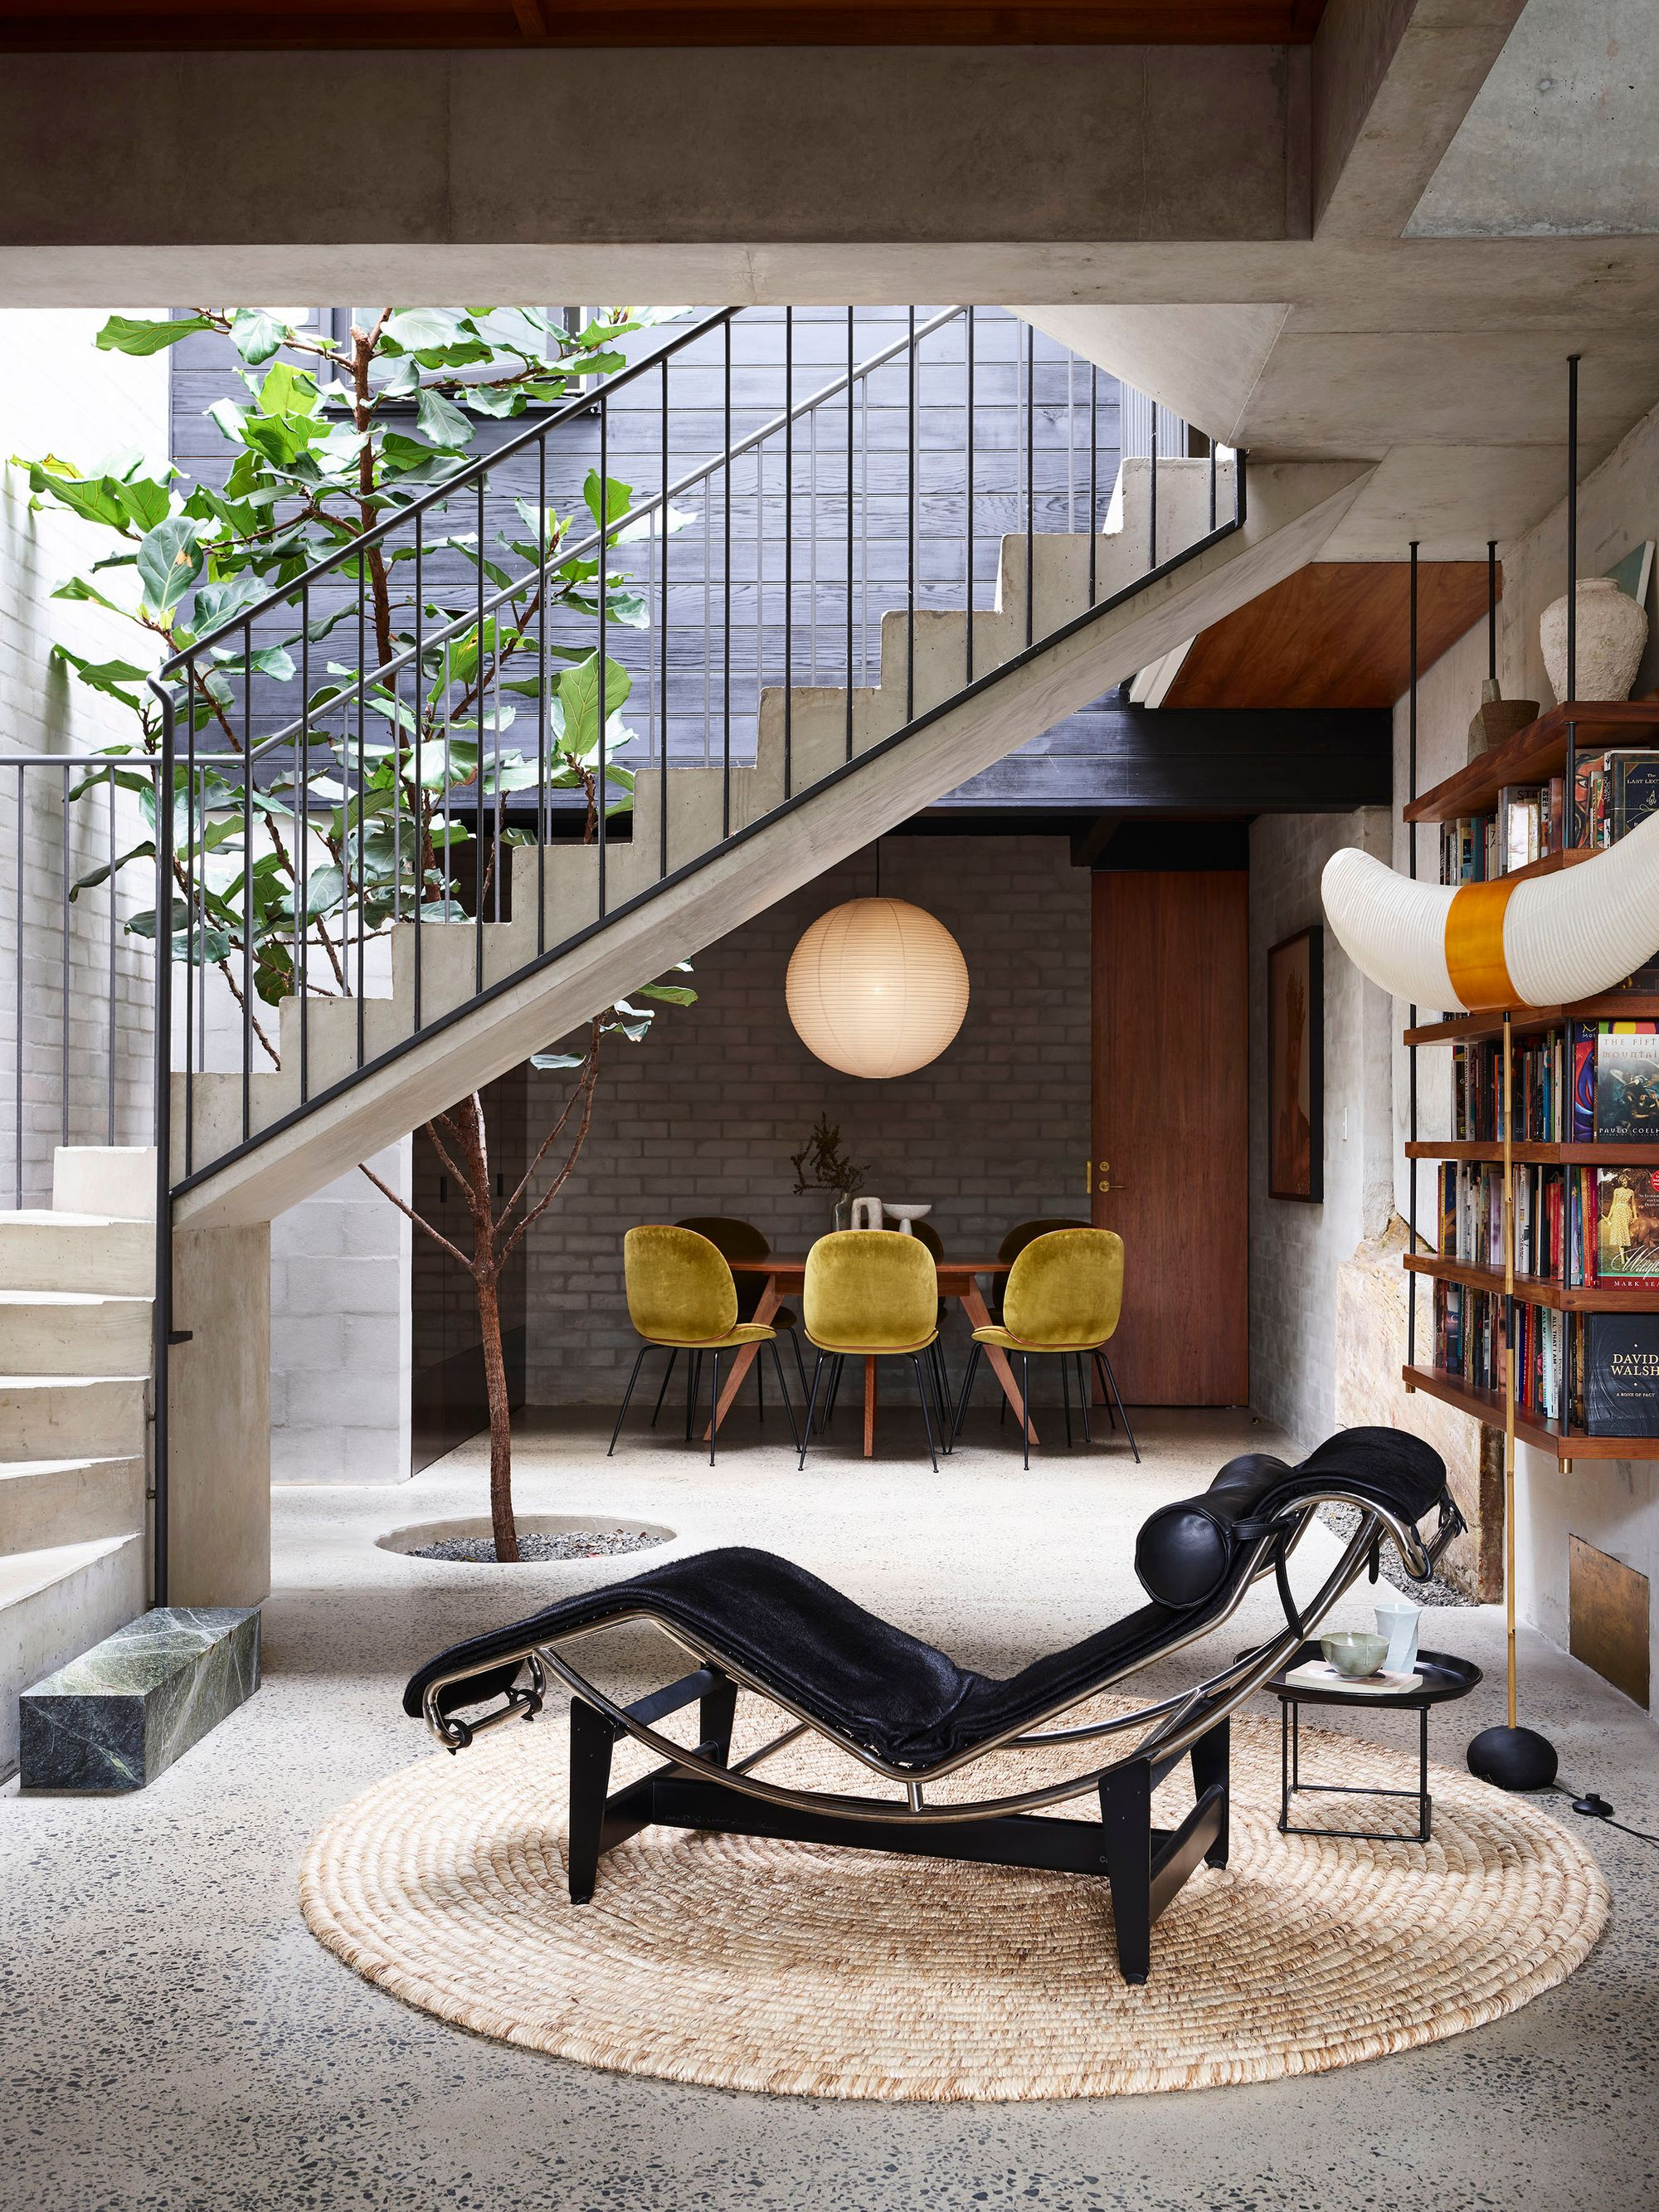 Pin By Anis Sofbrida On Arch Design In 2020 Australian Interior